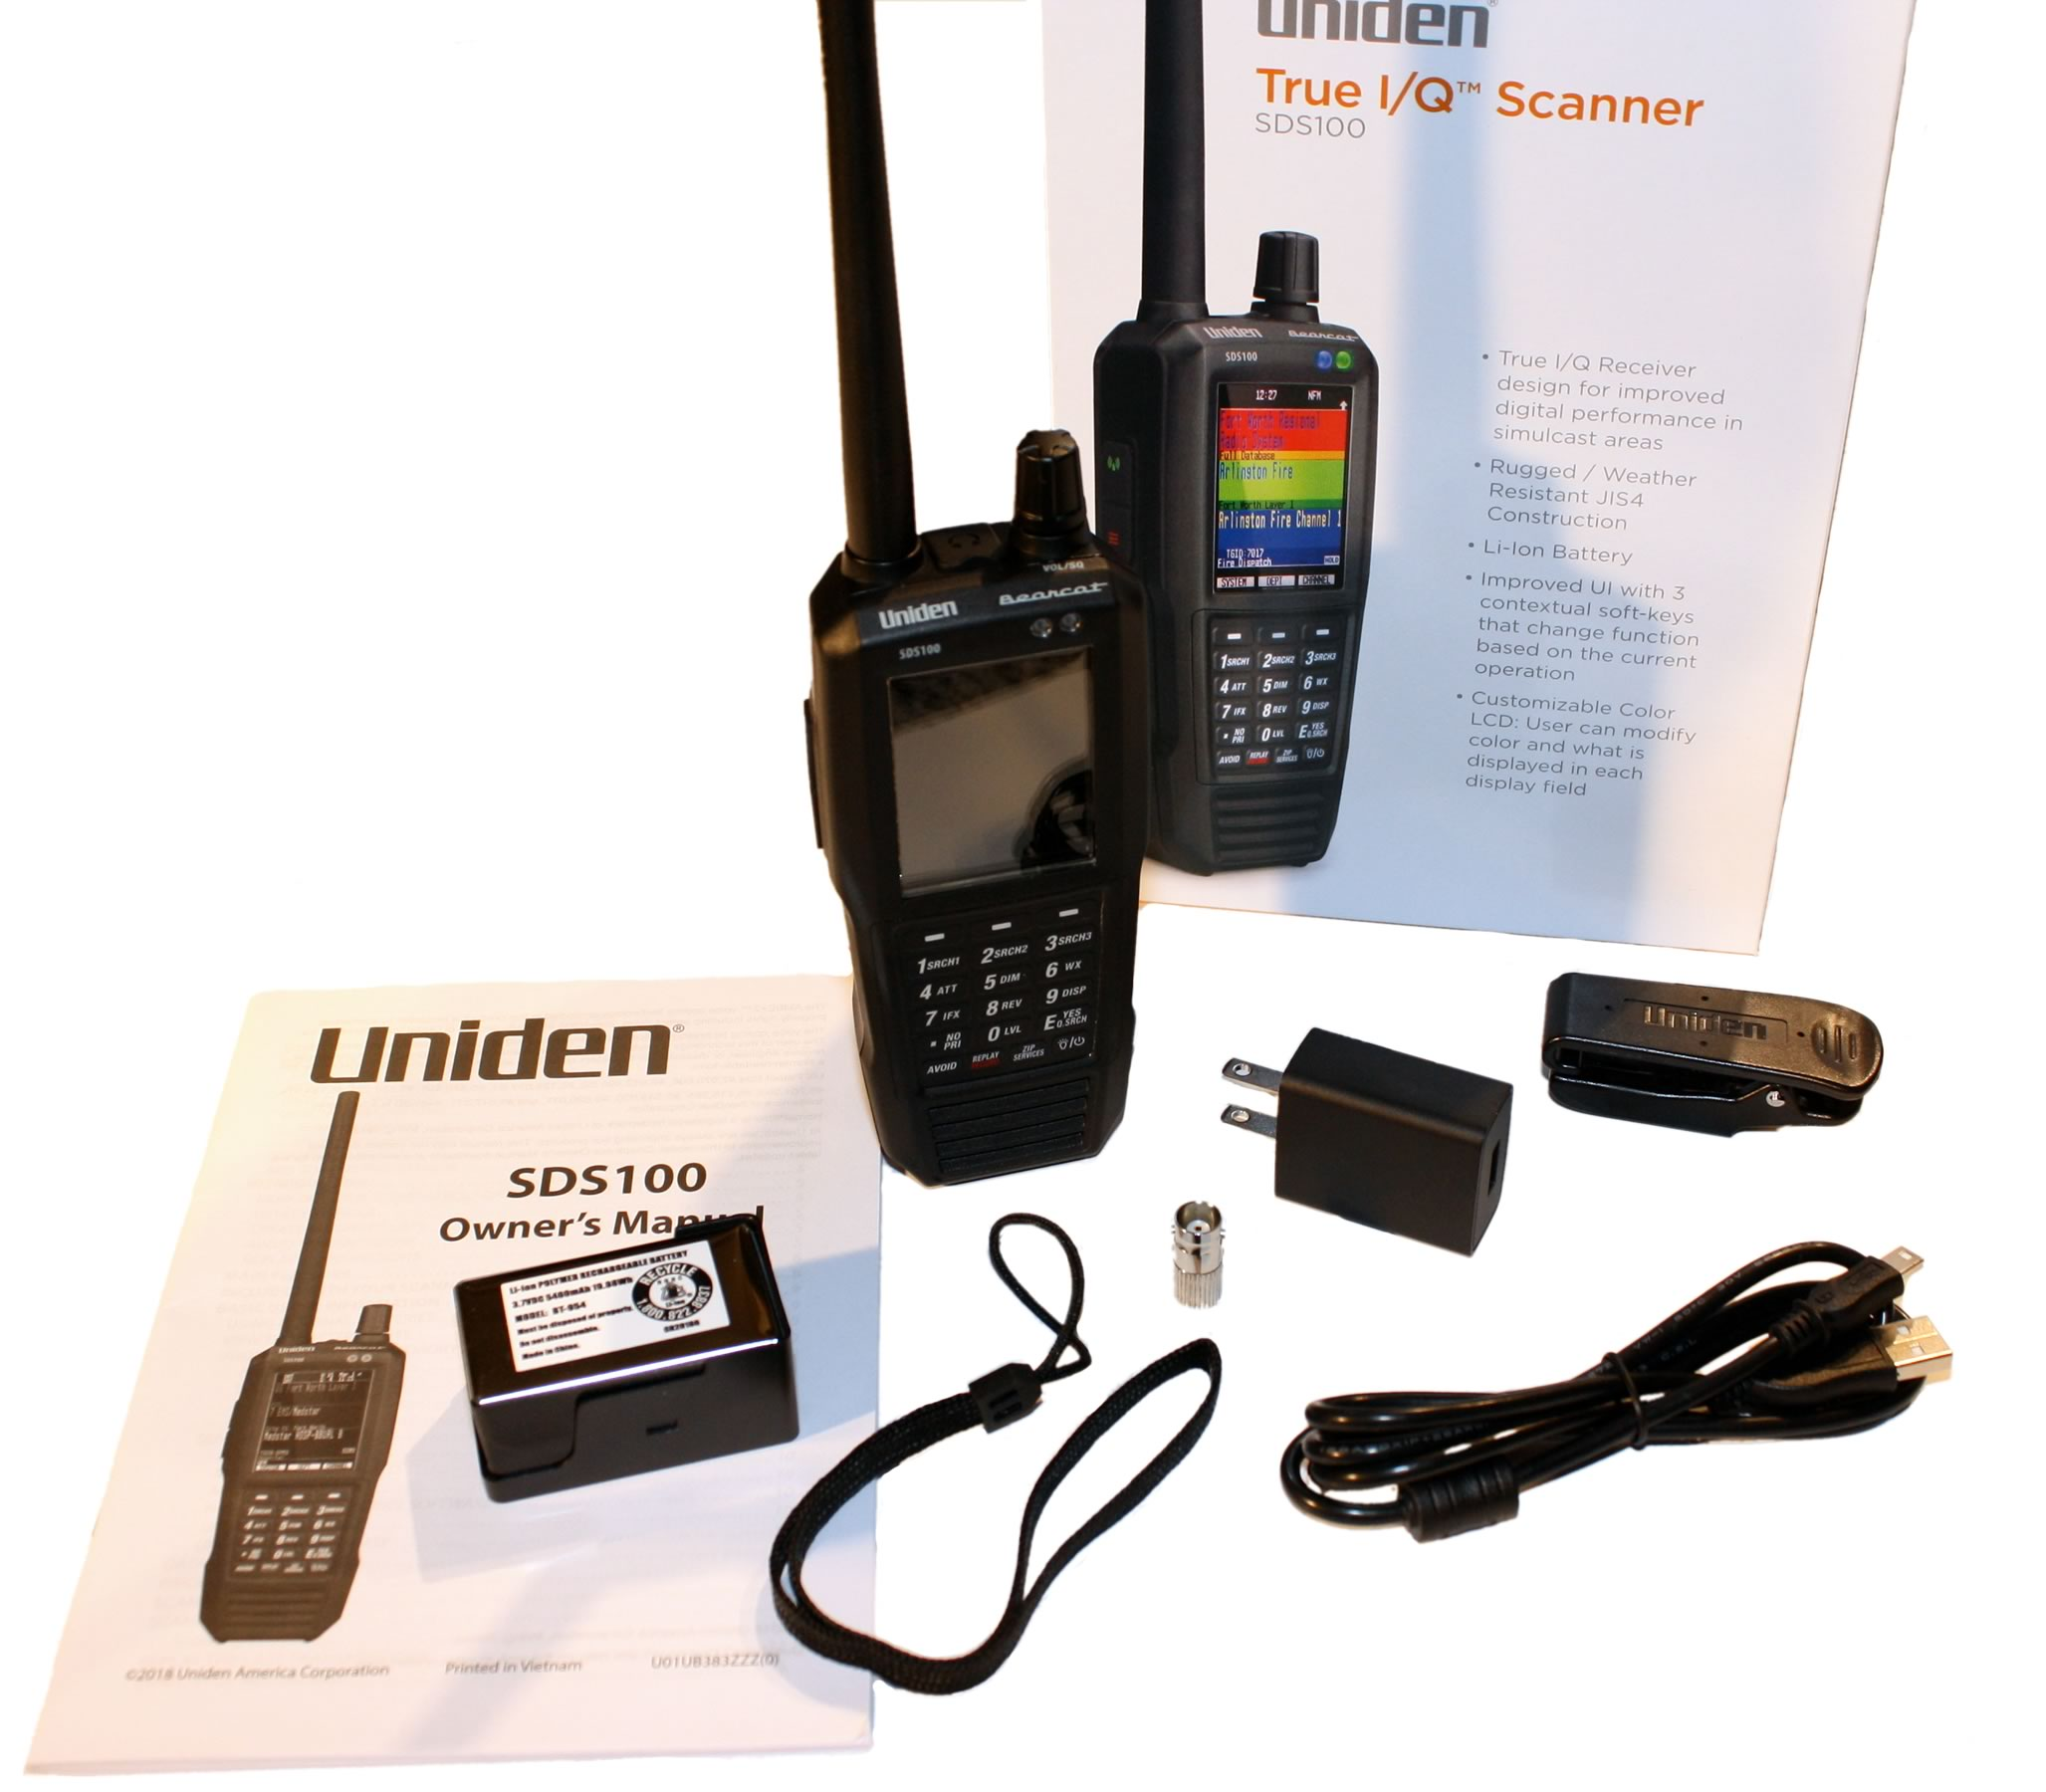 Uniden SDS100 Handheld Radio Scanner Featuring True IQ Software Defined  Radio Receiver for Clear Simulcast Performance, Rugged Weather Resistant